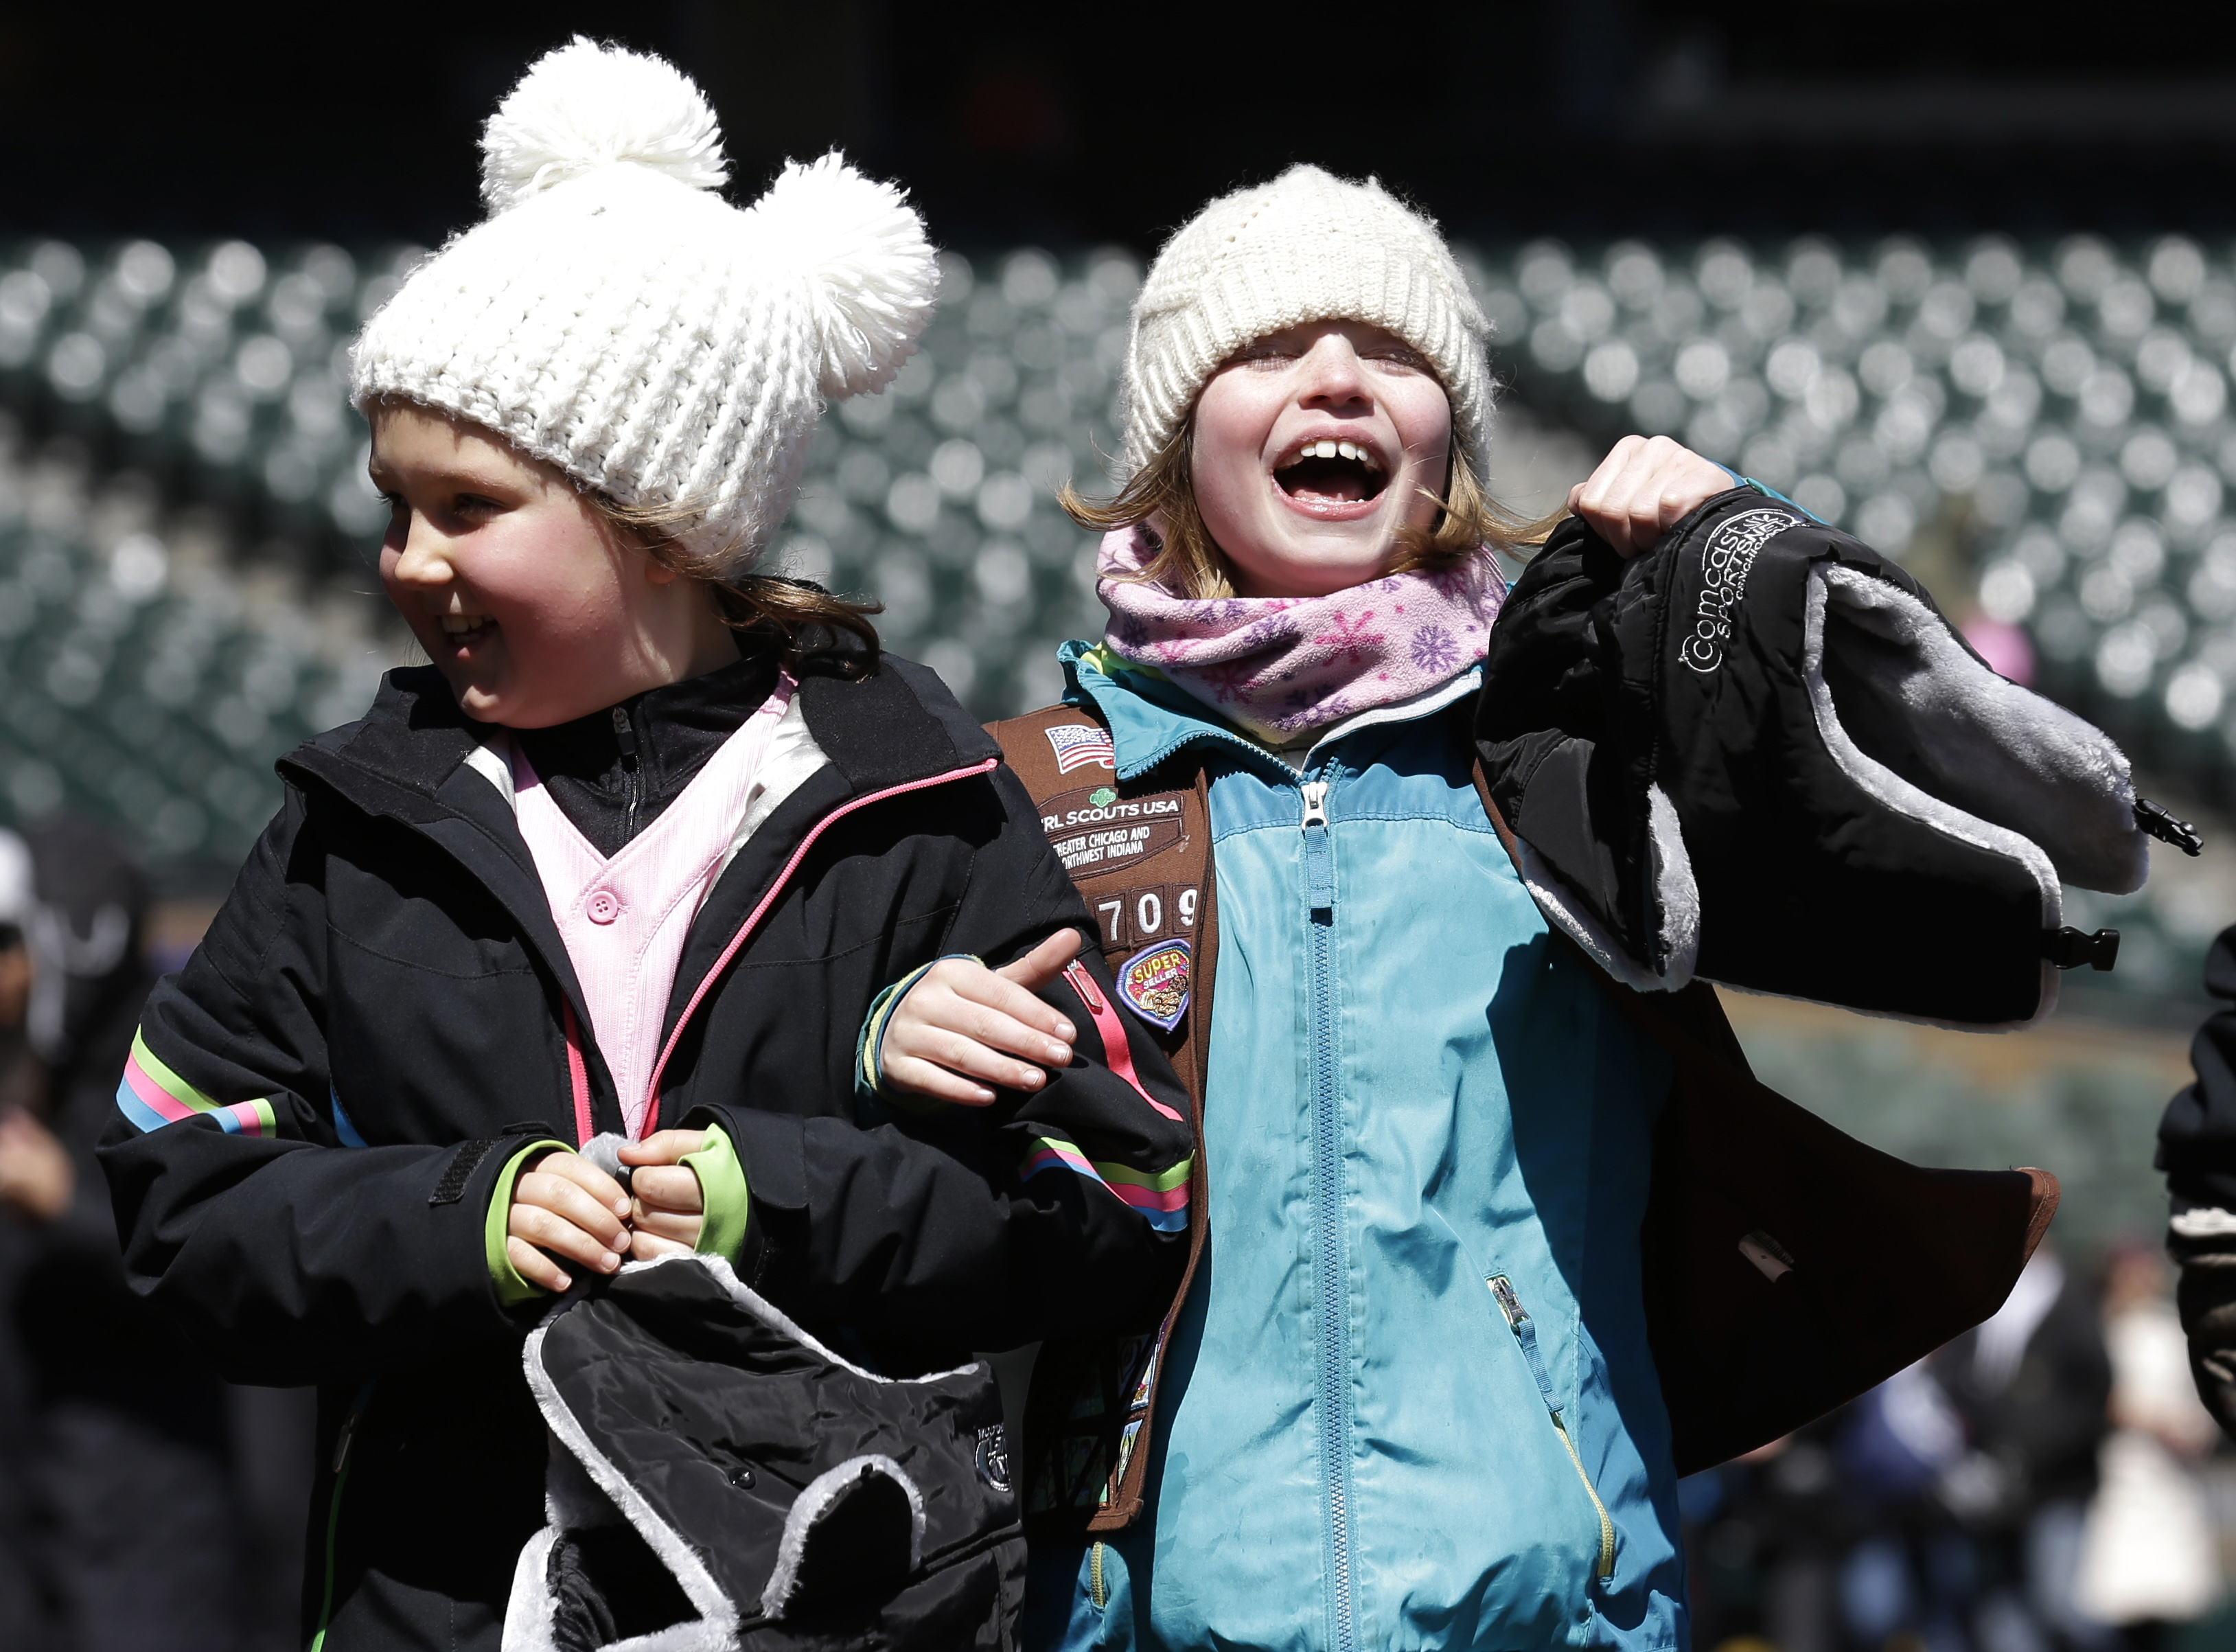 Fans bundle up as they walk on the field before a baseball game between the Chicago White Sox and the Cleveland Indians, Saturday, April 9, 2016, in Chicago. (AP Photo/Nam Y. Huh)